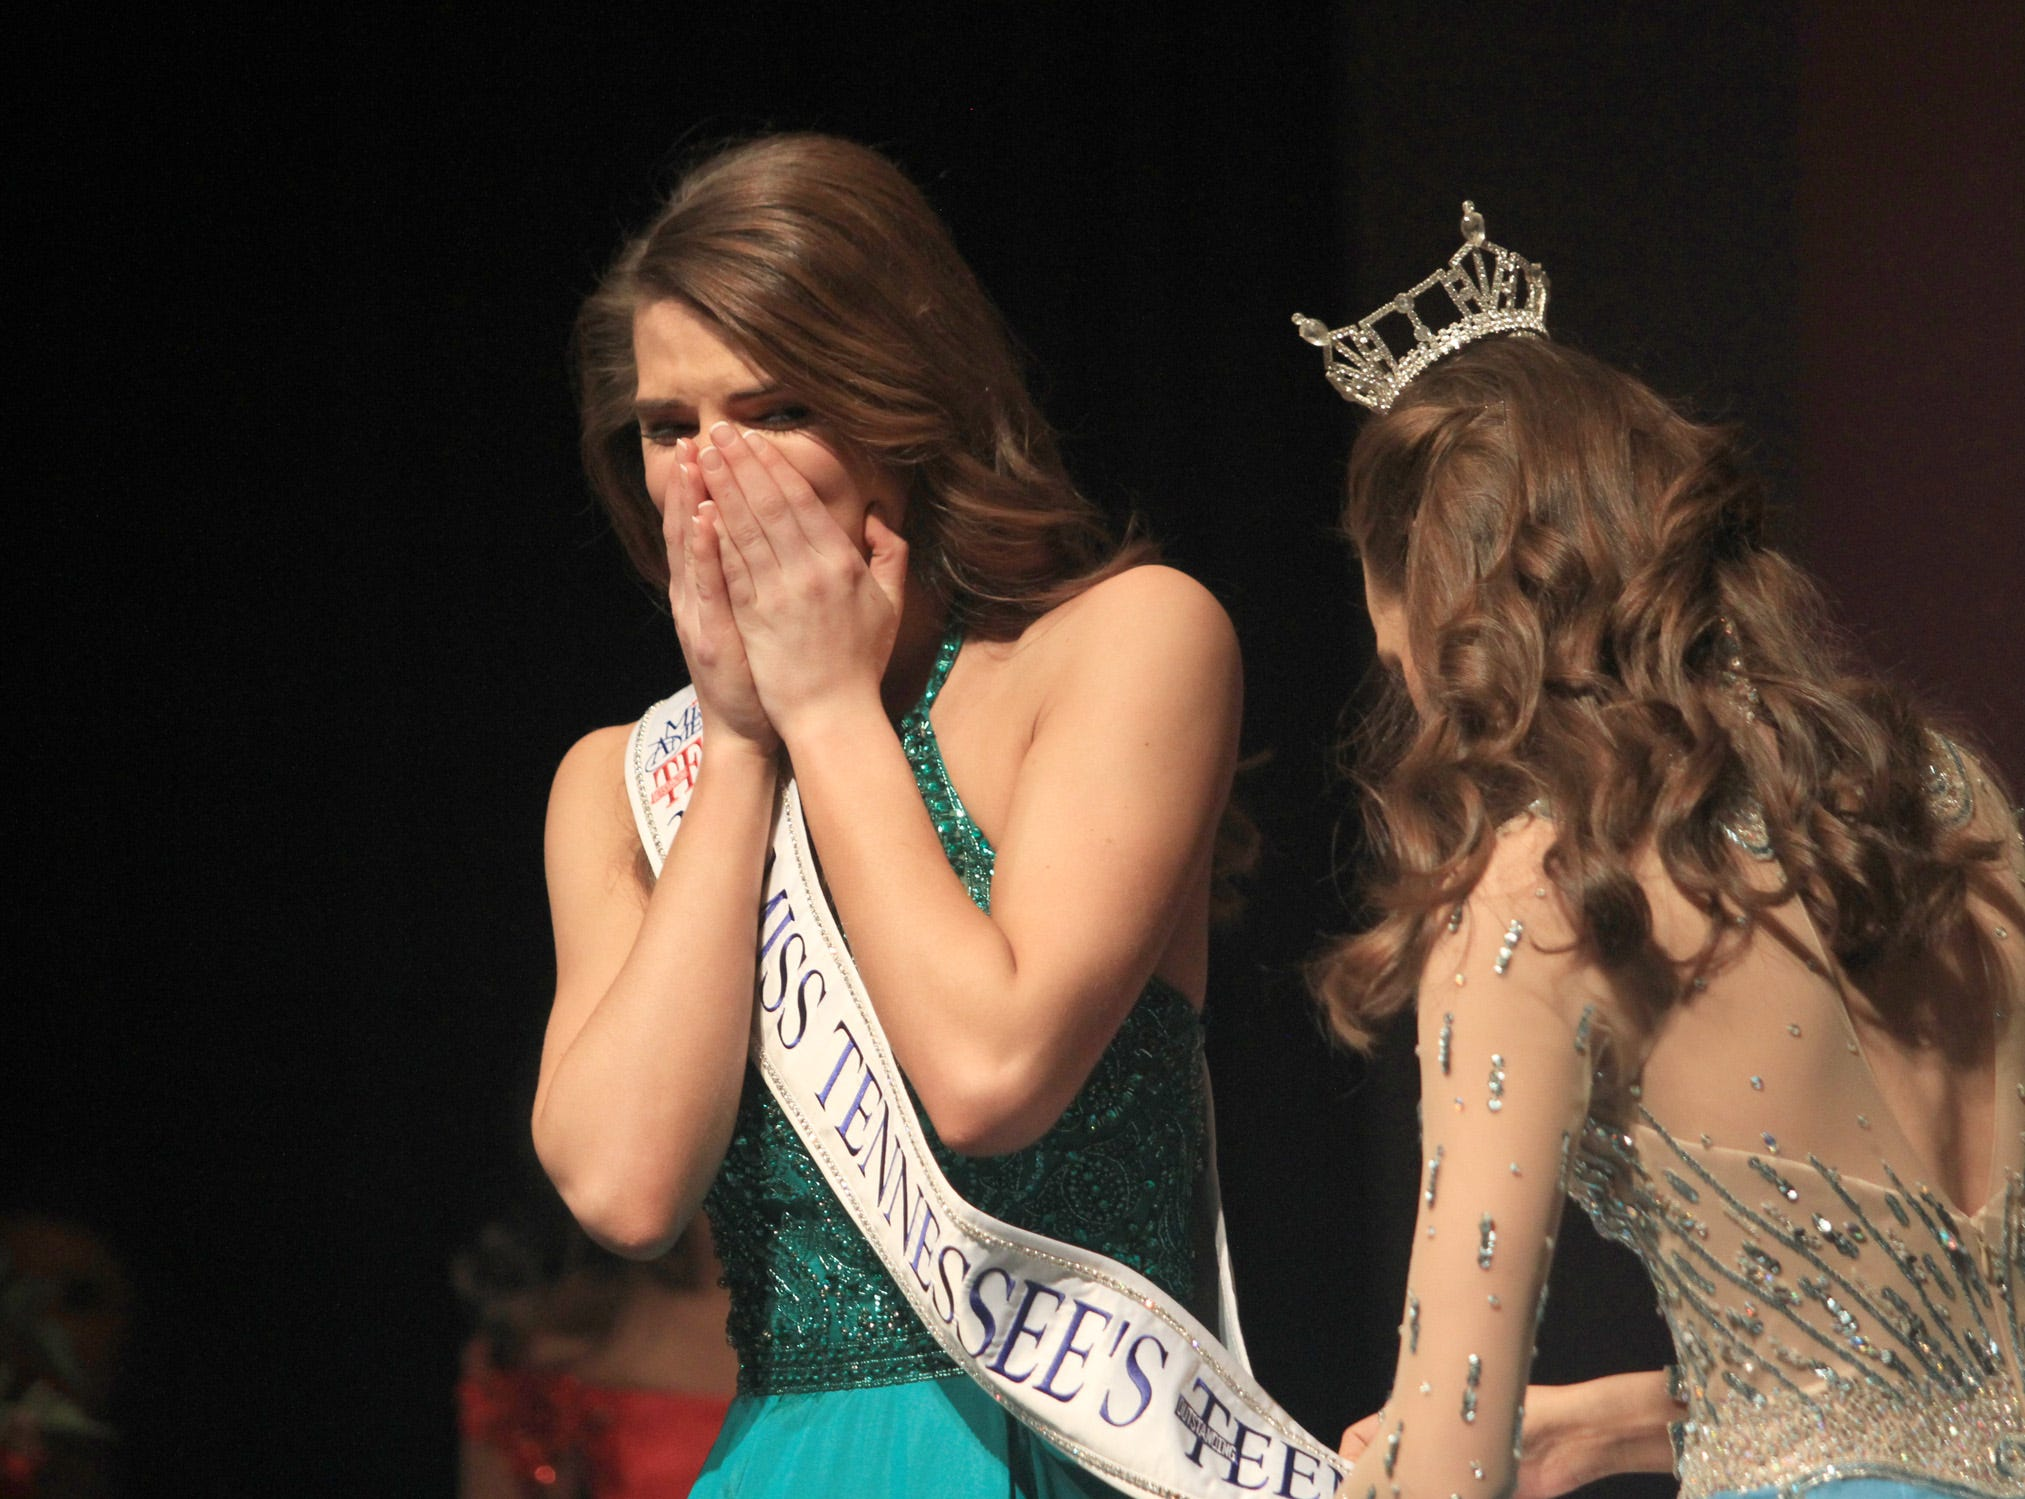 Taylor Parsons gets her sash put on after becoming Miss Tennessee's Outstanding Teen 2019 in Gallain,TN on Saturday, March 30, 2019.